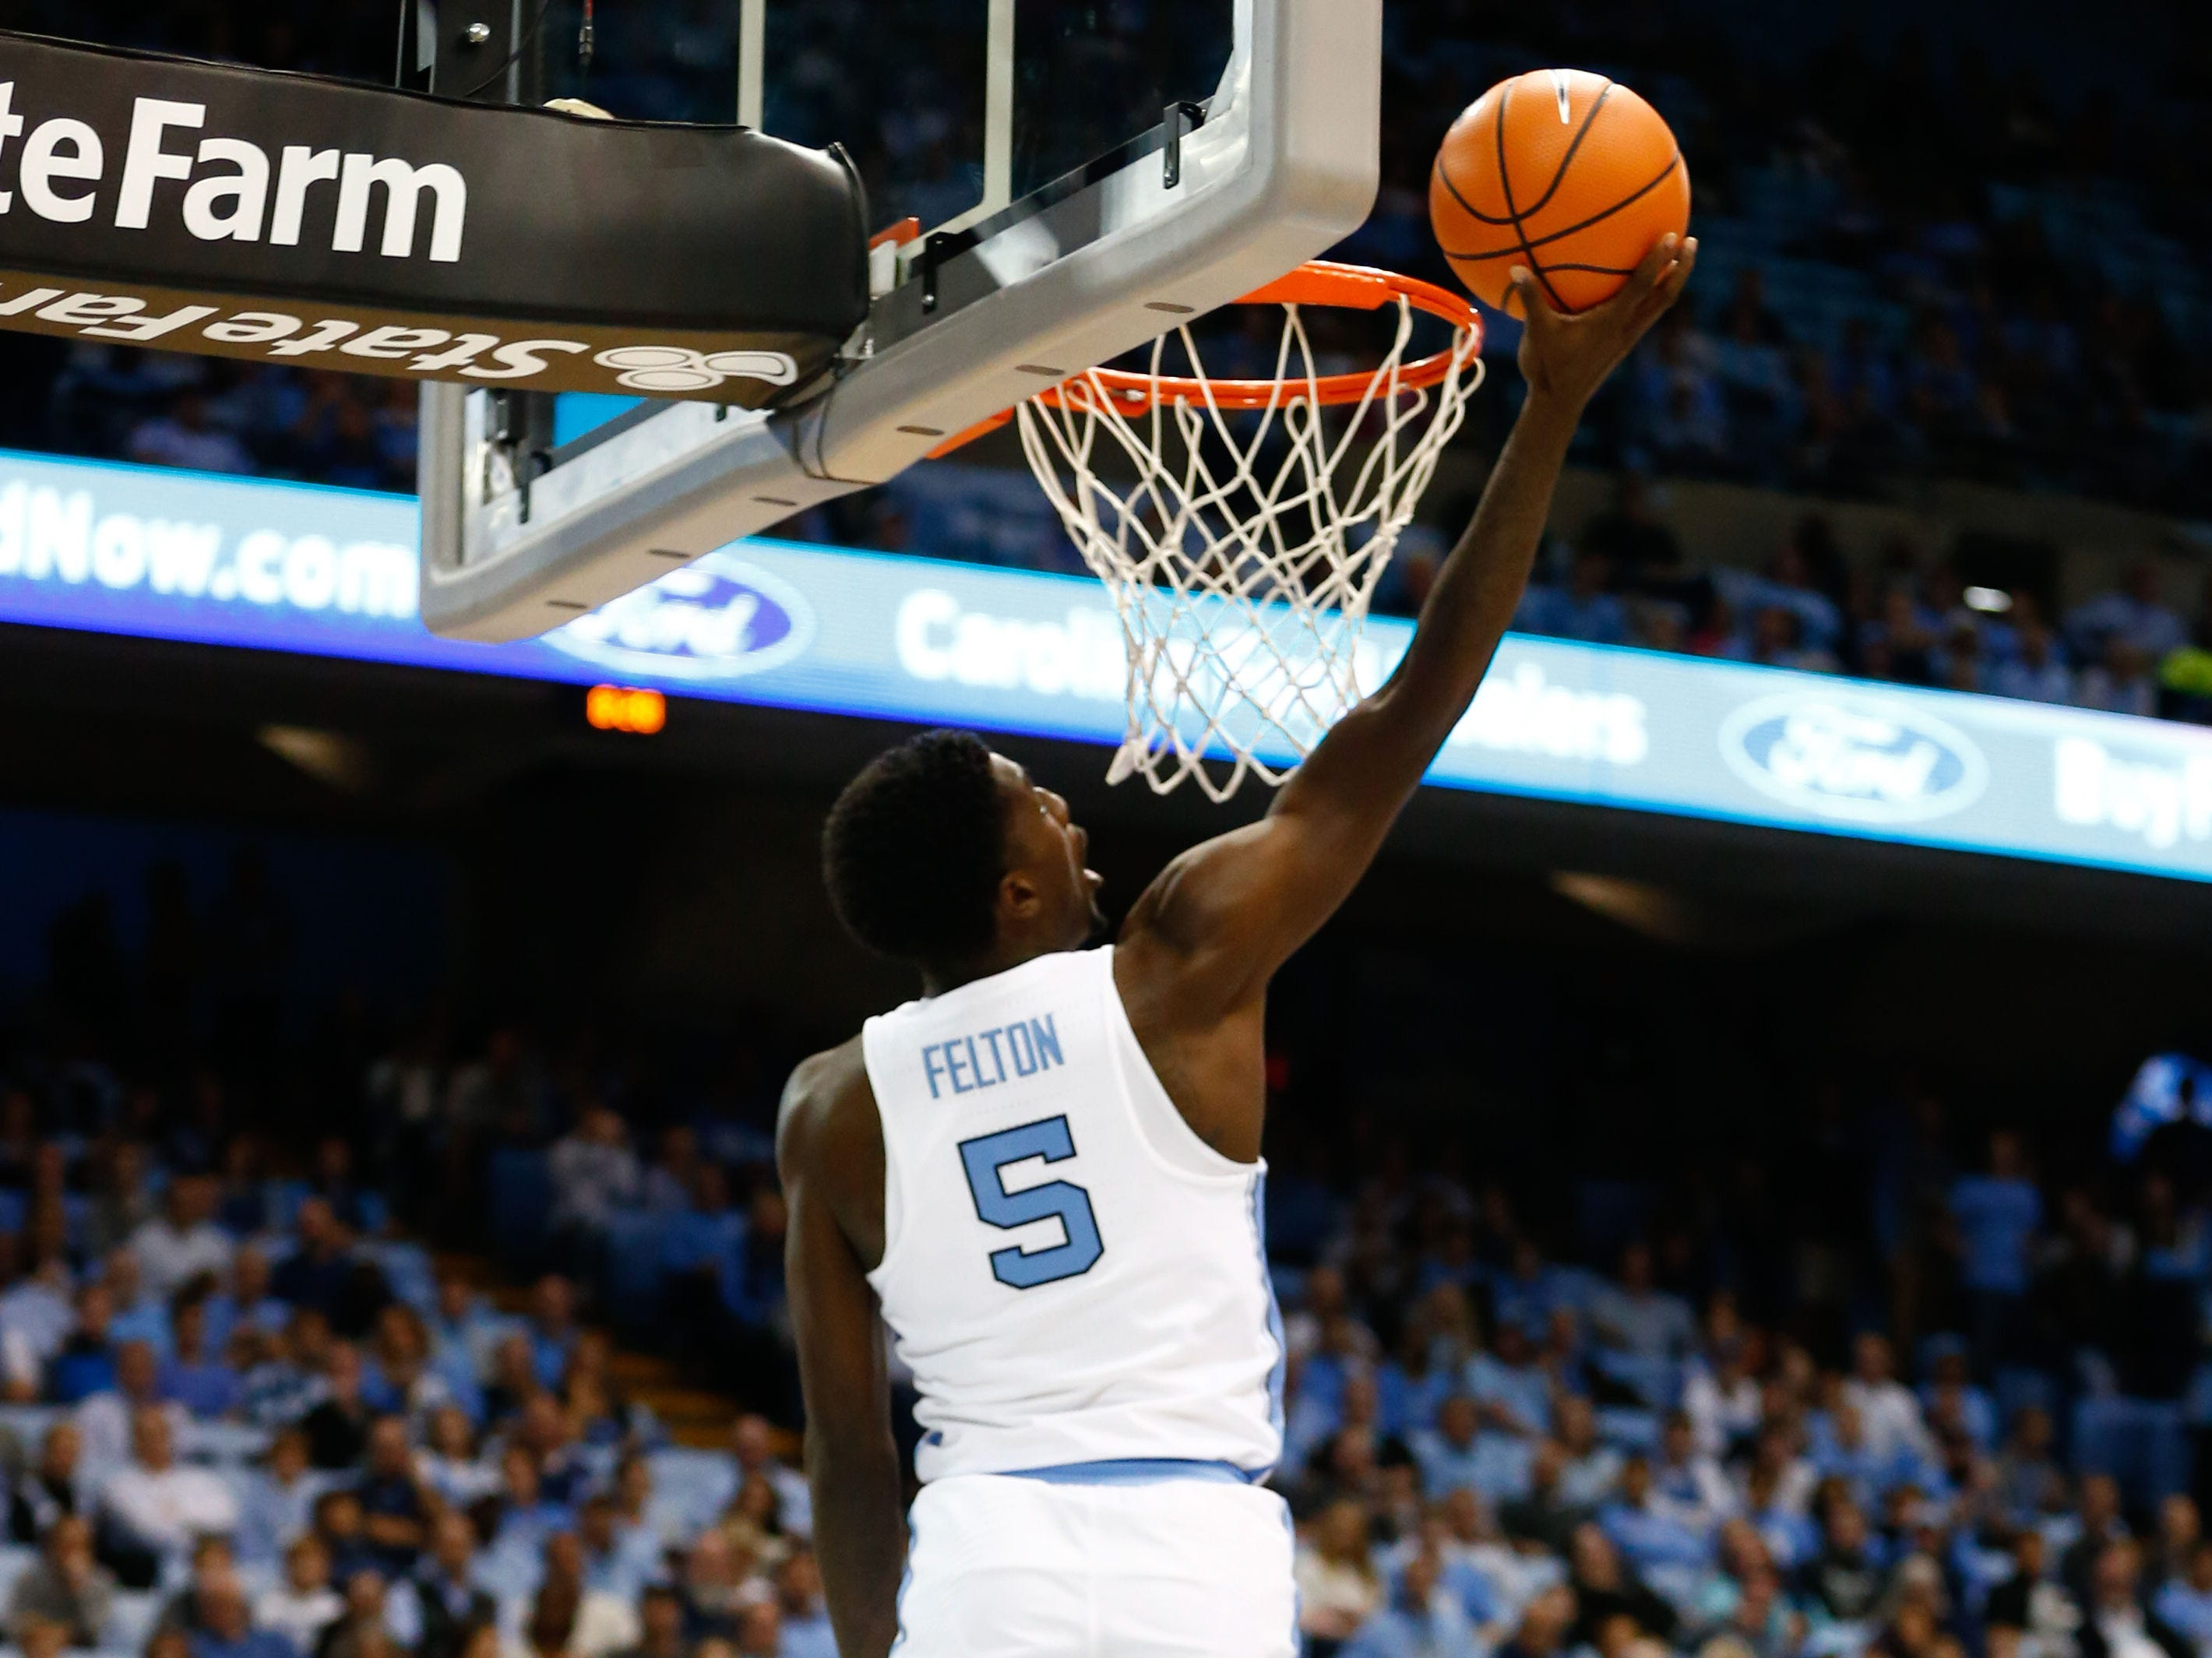 Dec 6, 2017; Chapel Hill, NC, USA; North Carolina Tar Heels guard Jalek Felton (5) goes up for a shot against the Western Carolina Catamounts at Dean E. Smith Center. Mandatory Credit: Jeremy Brevard-USA TODAY Sports